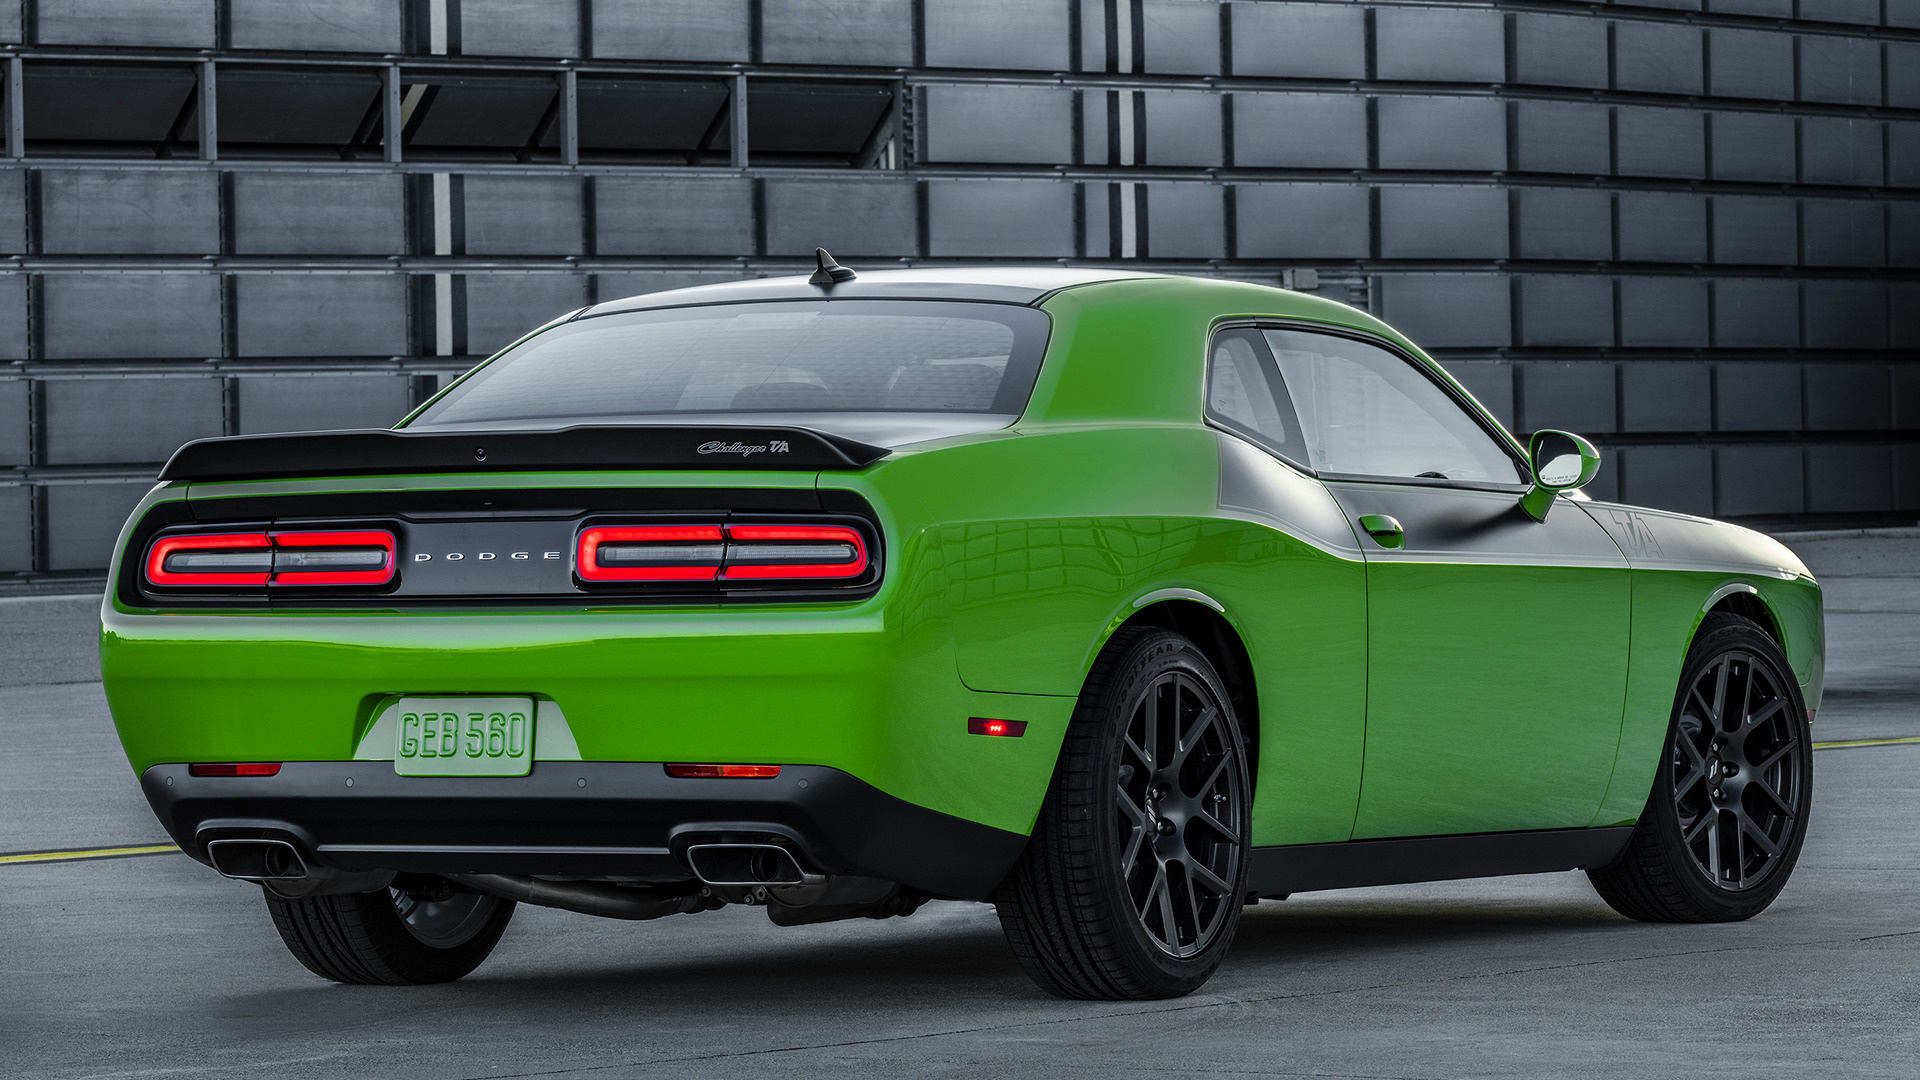 2017 Hellcat Charger >> 2017 Dodge Challenger T/A - Wallpapers and HD Images | Car ...